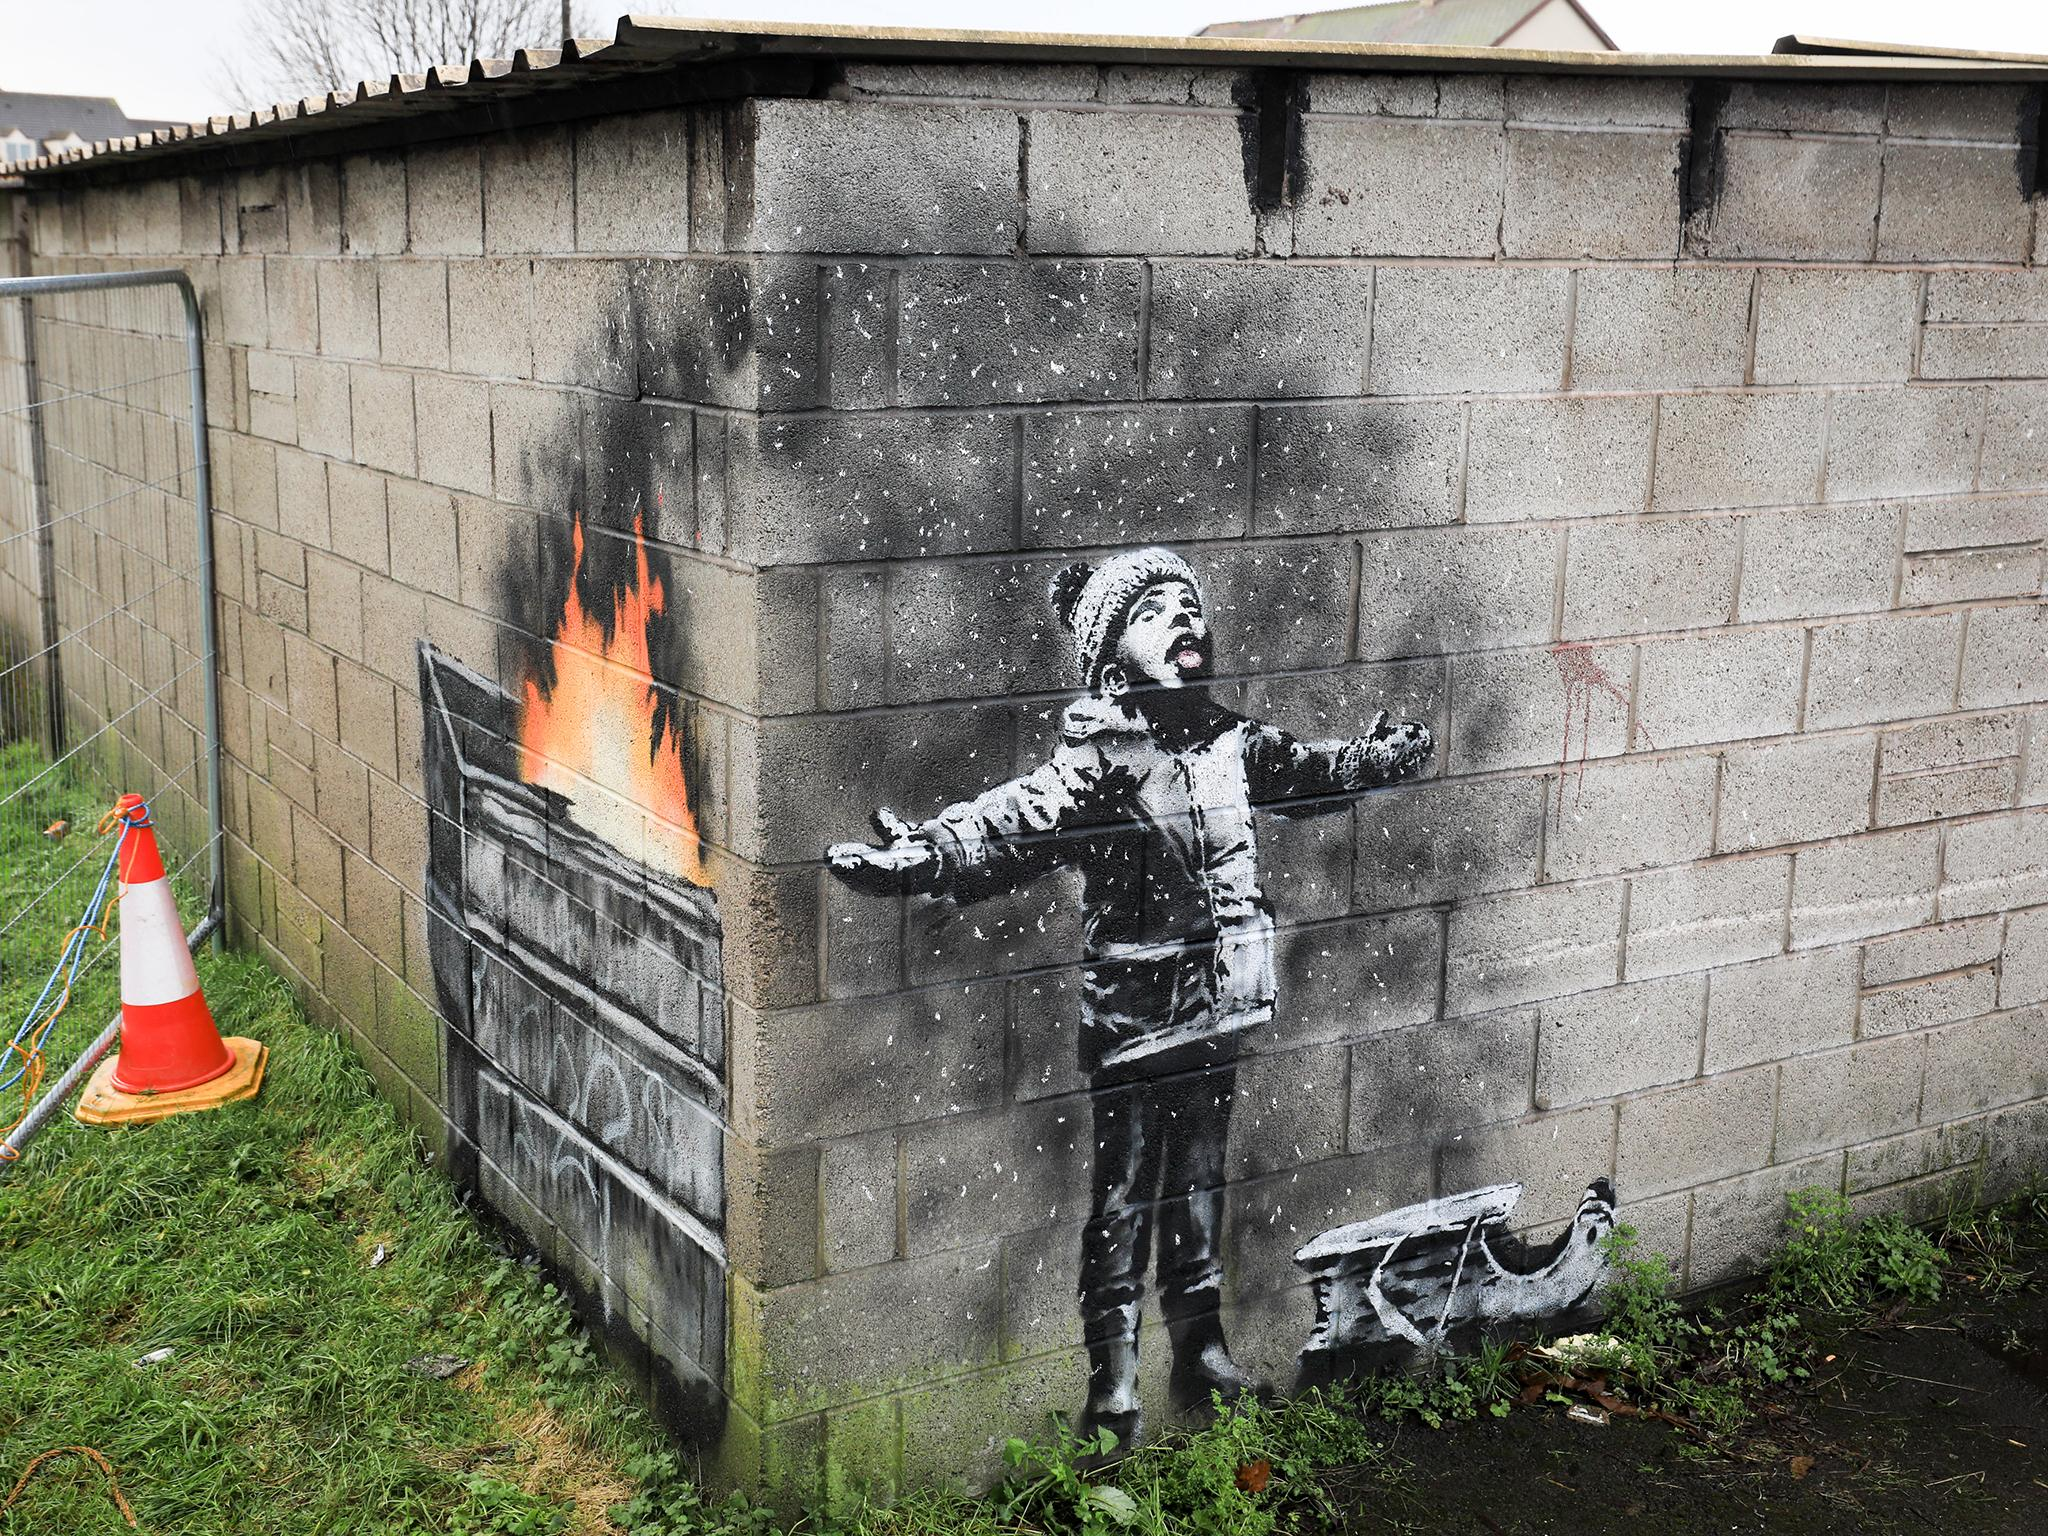 Banksy mural attacked by 'drunk halfwit' | The Independent